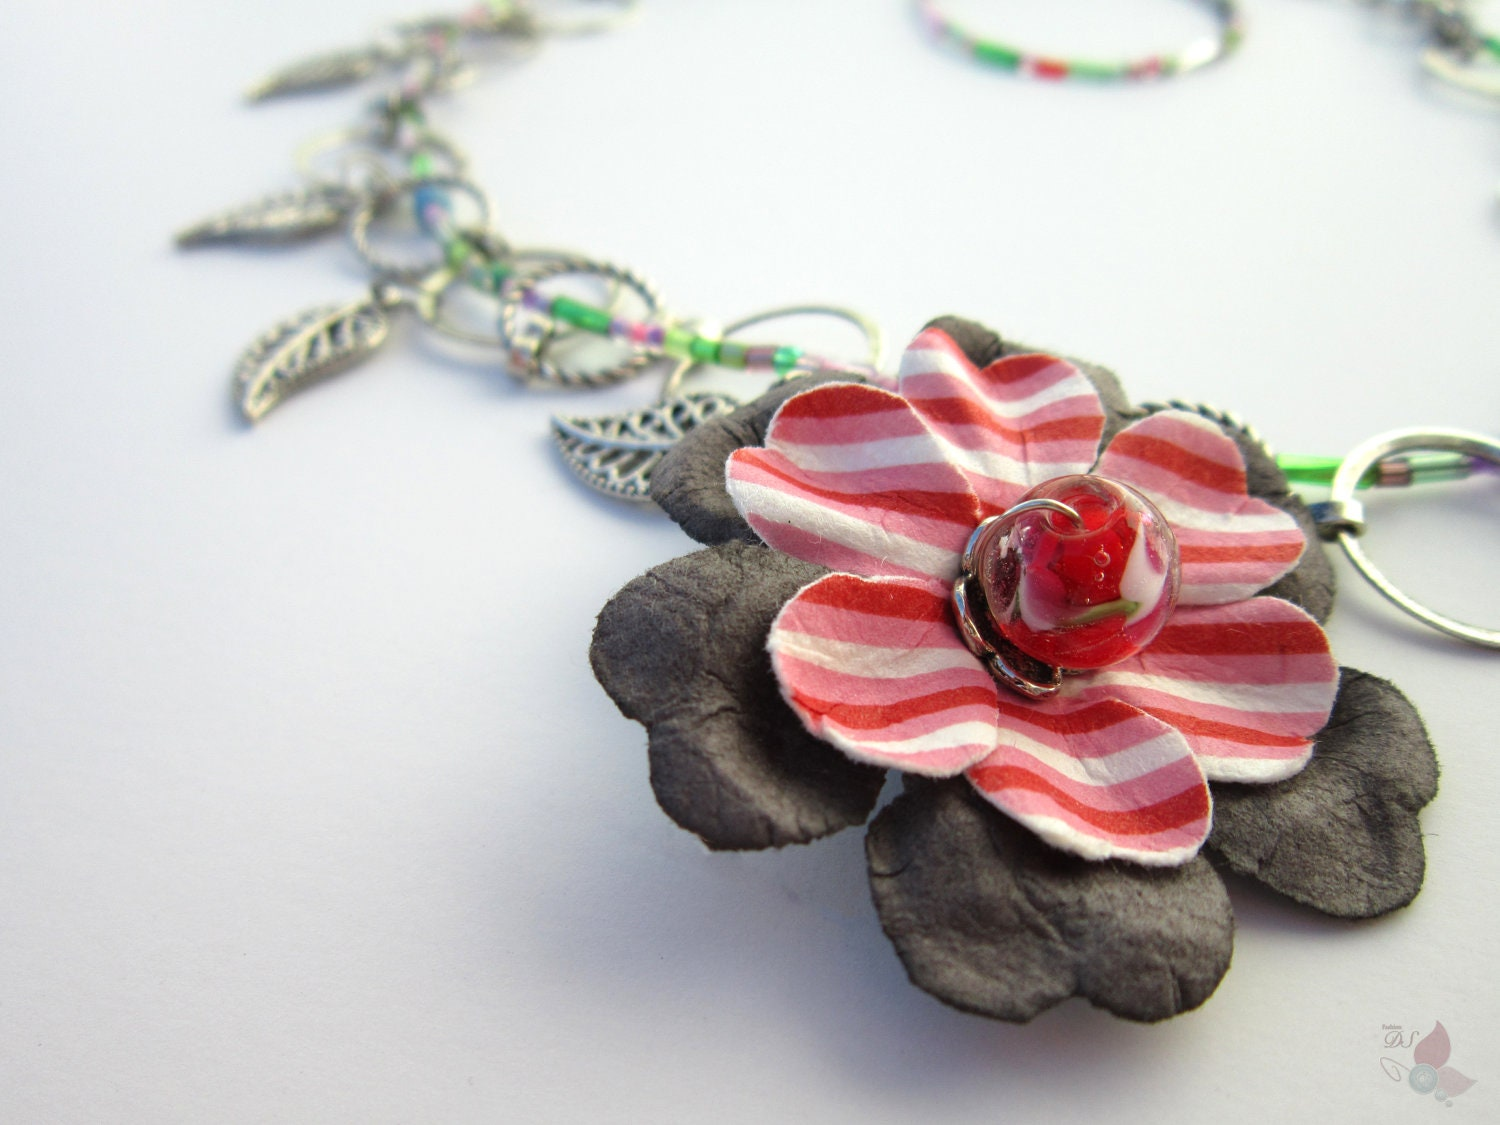 On Sale Necklace with Flower on the Side and Dangling Leaves and a Seed Bead Thread